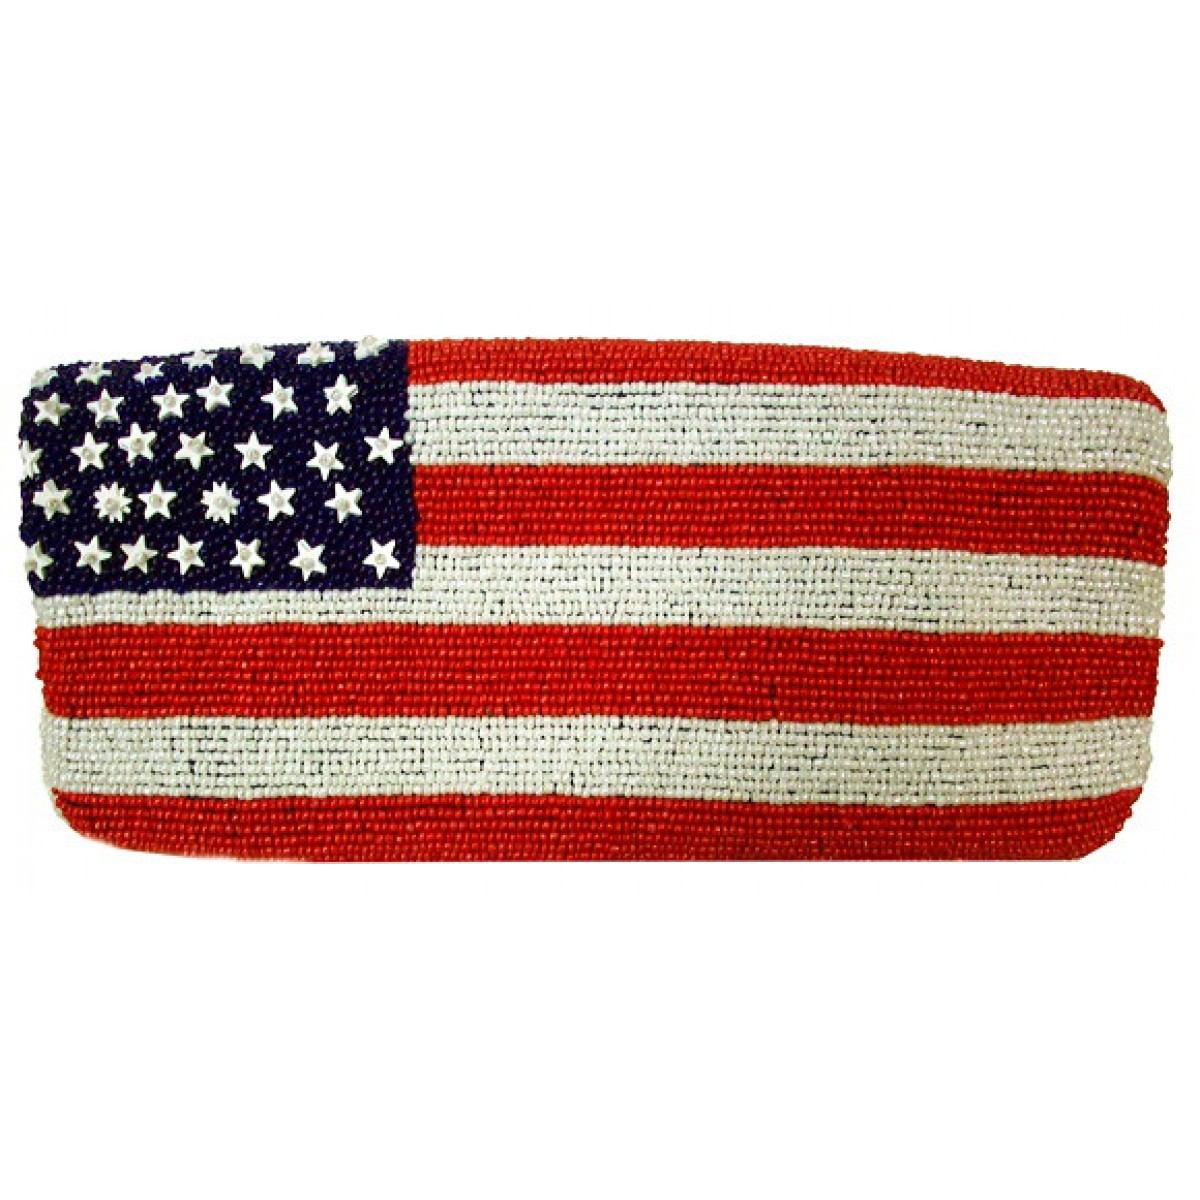 Fully Beaded US Flag Bag